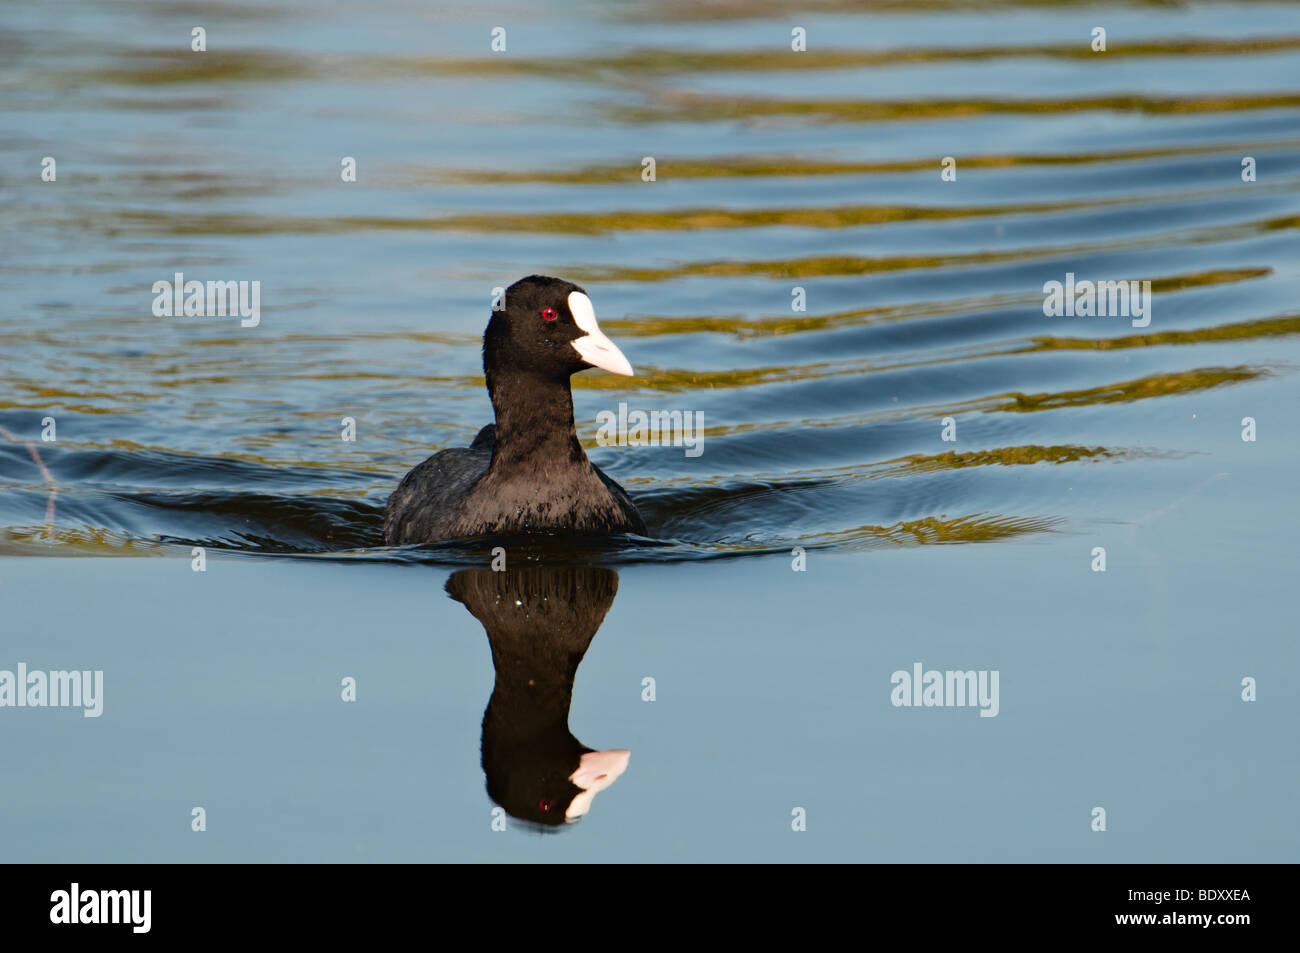 Eurasian coot (Fulica atra) with mirror in the water - Stock Image